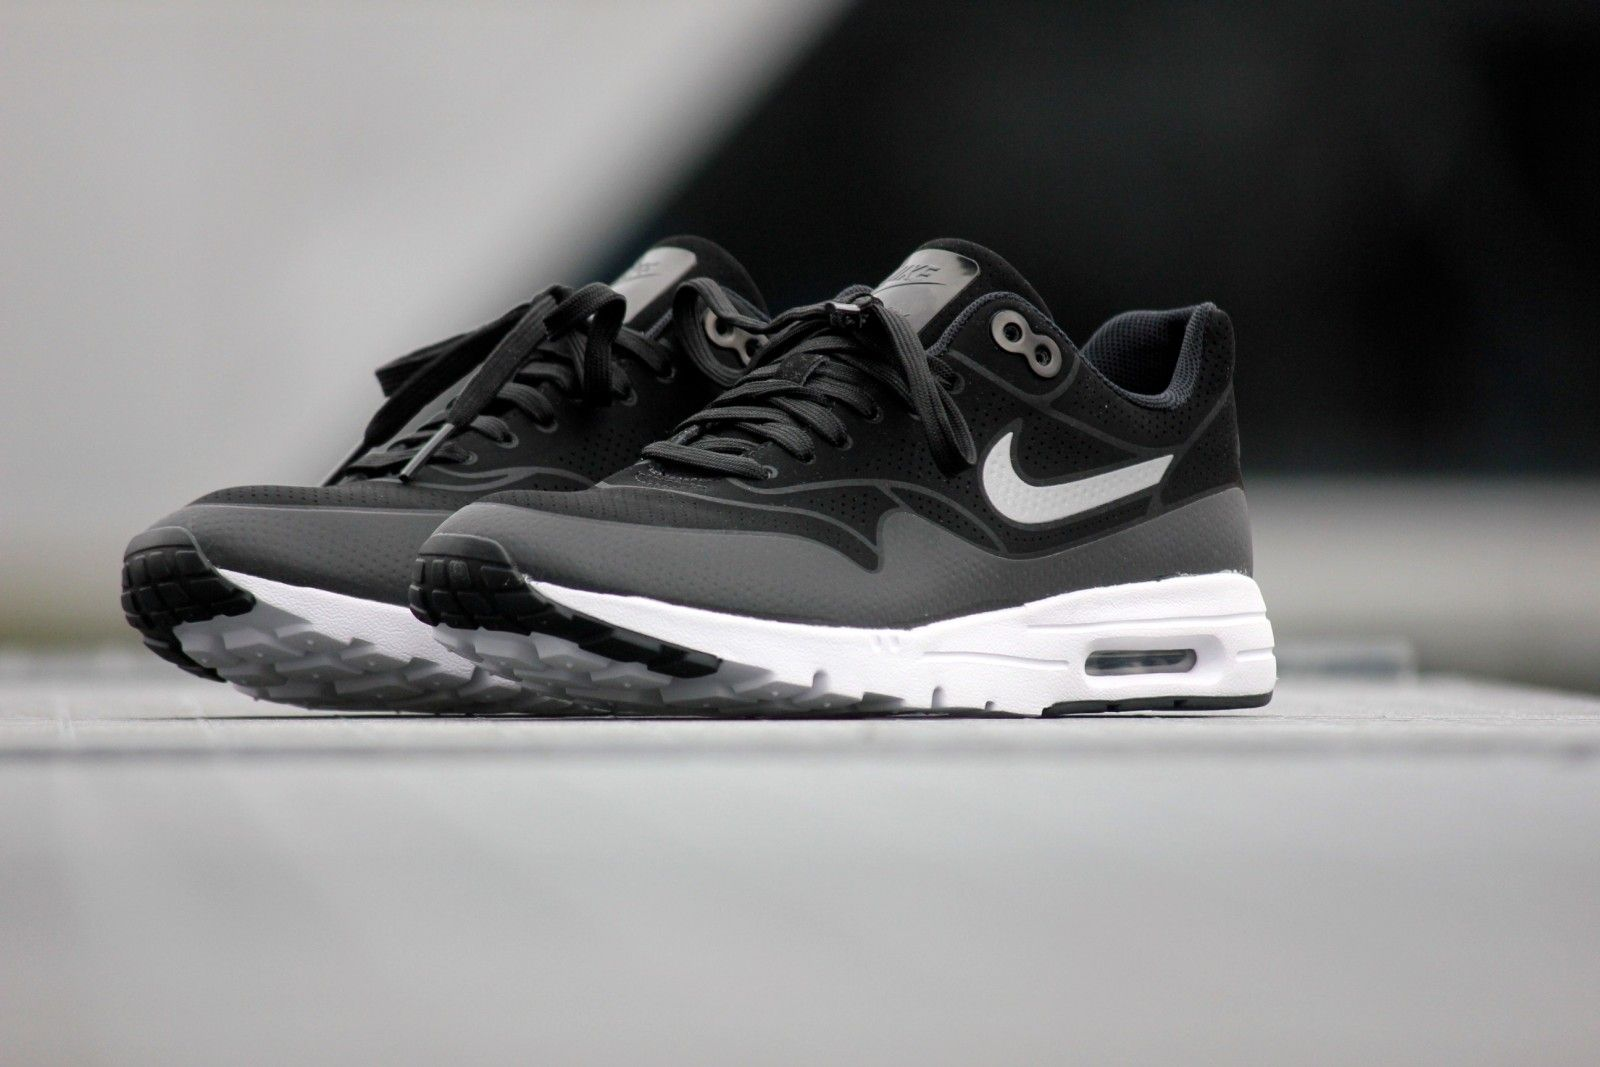 nike air max ultra moire black & white womens pumps